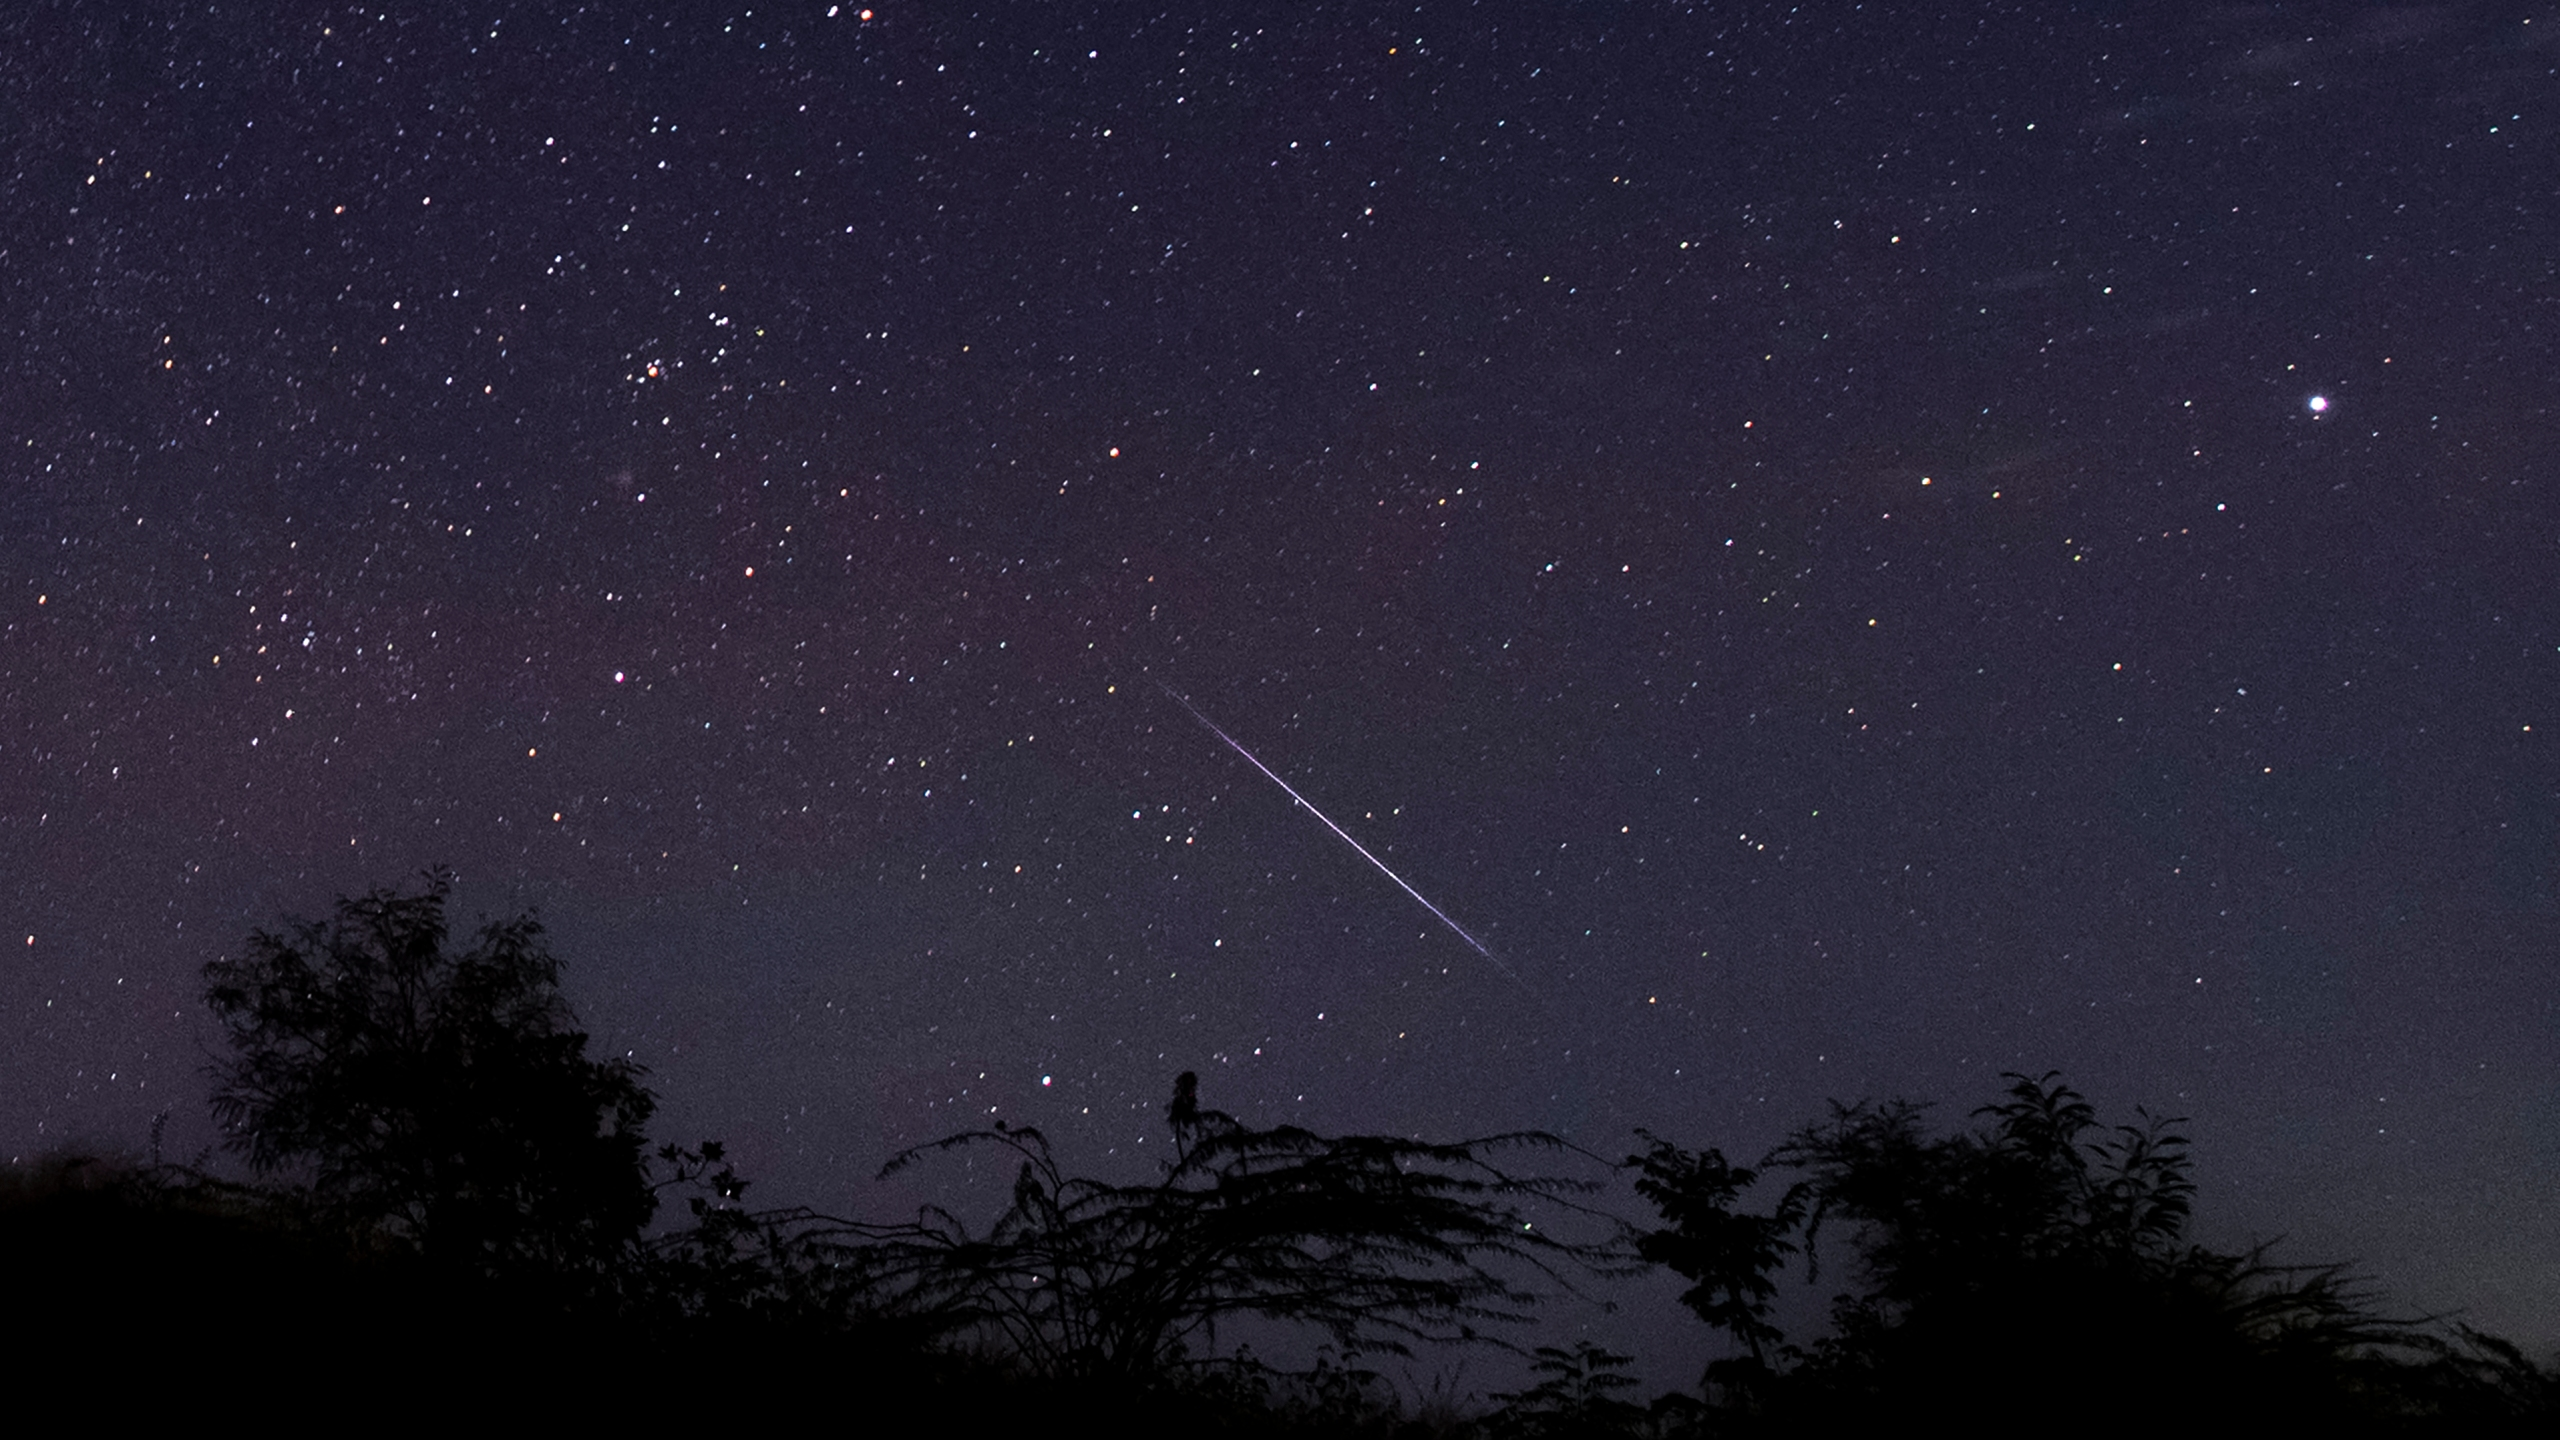 This photo taken late December 14, 2018 with a long time exposure shows a meteor streaking through the night sky over Myanmar during the Geminid meteor shower seen from Wundwin township near Mandalay city. (Credit: YE AUNG THU/AFP via Getty Images)